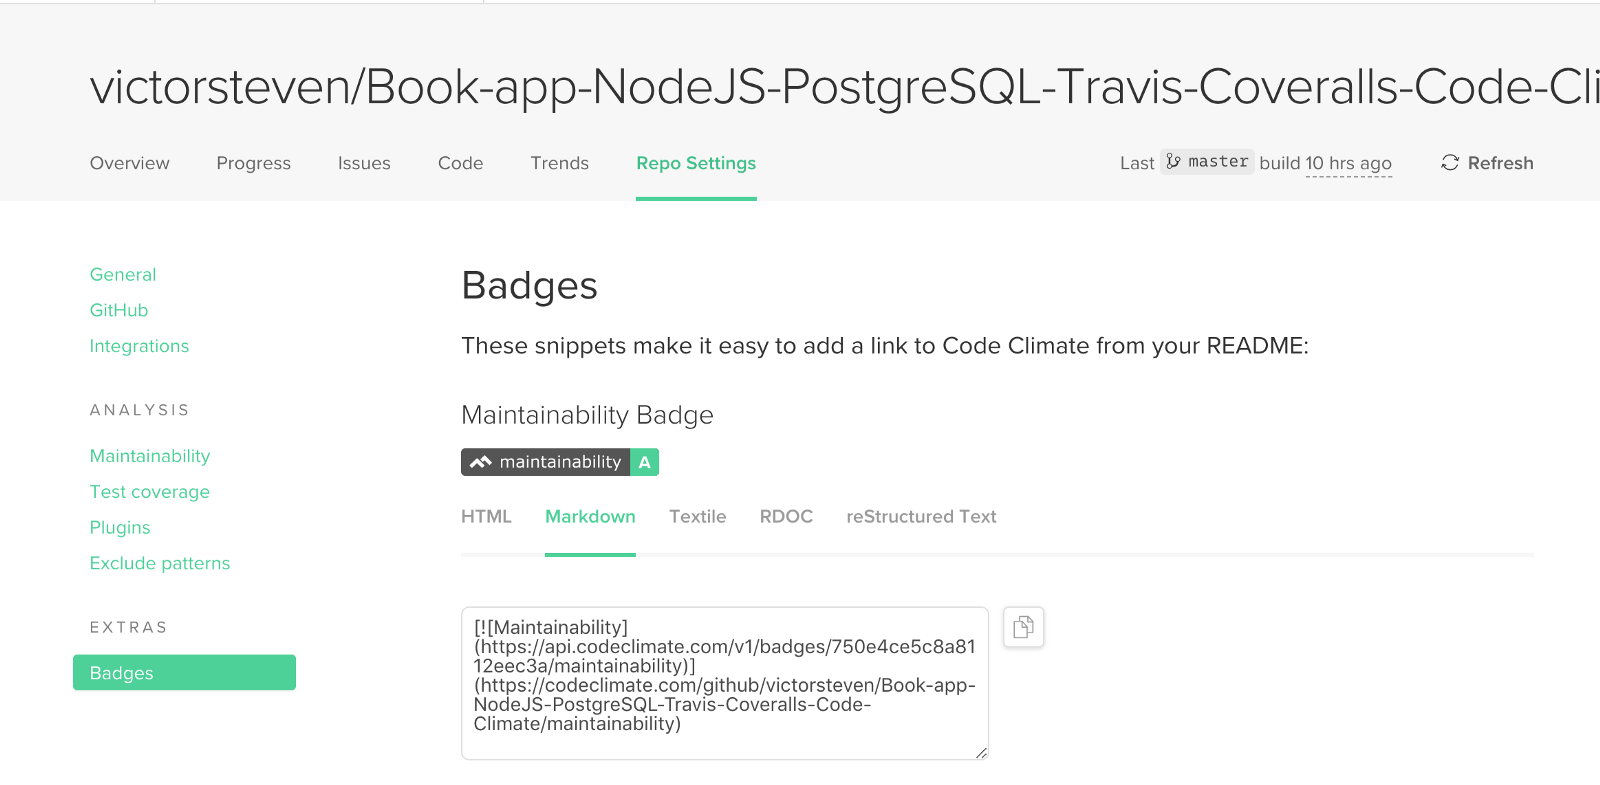 Restful API with NodeJS, Express, PostgreSQL, Sequelize, Travis